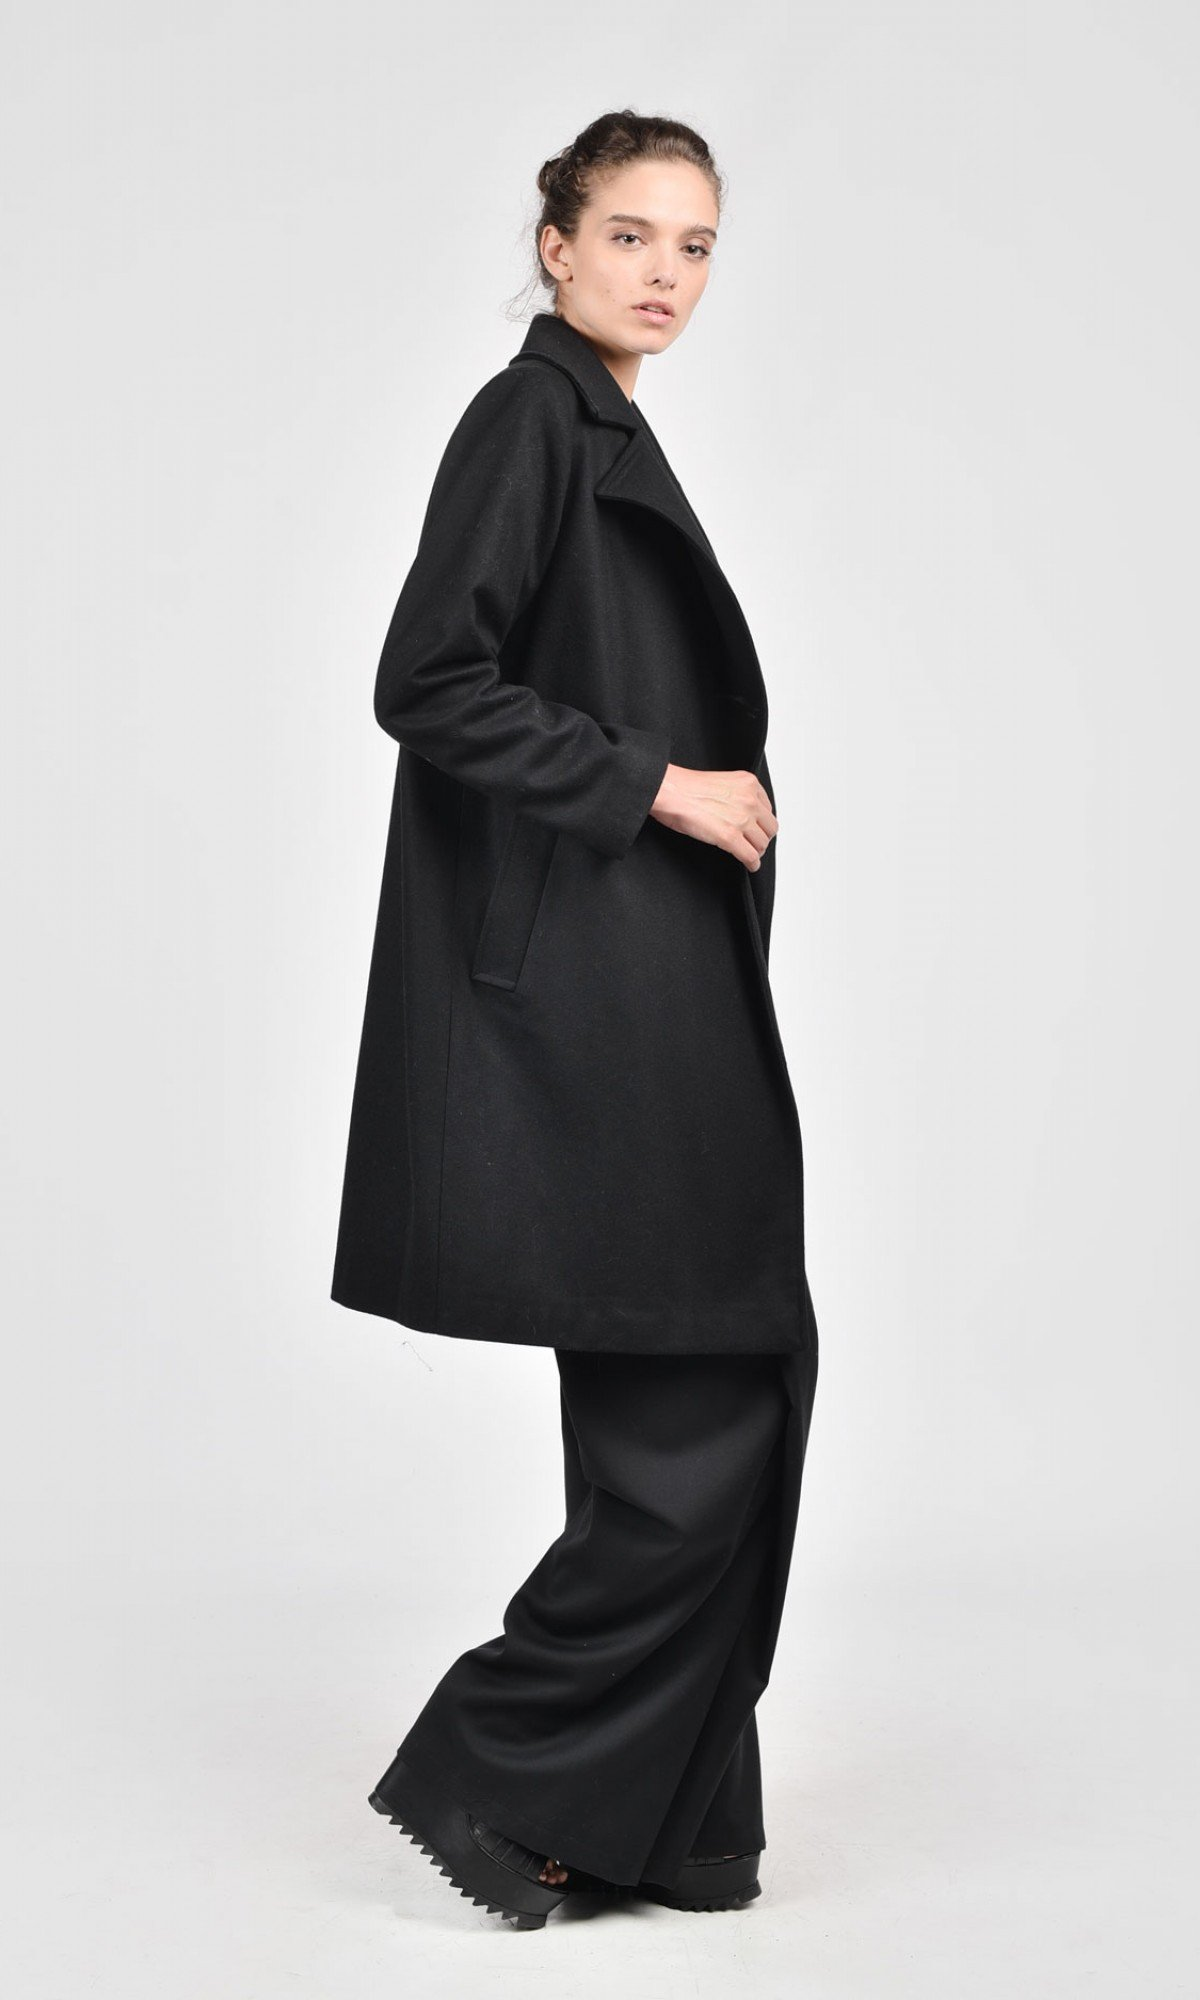 Cashmere Lined Black Coat A07161